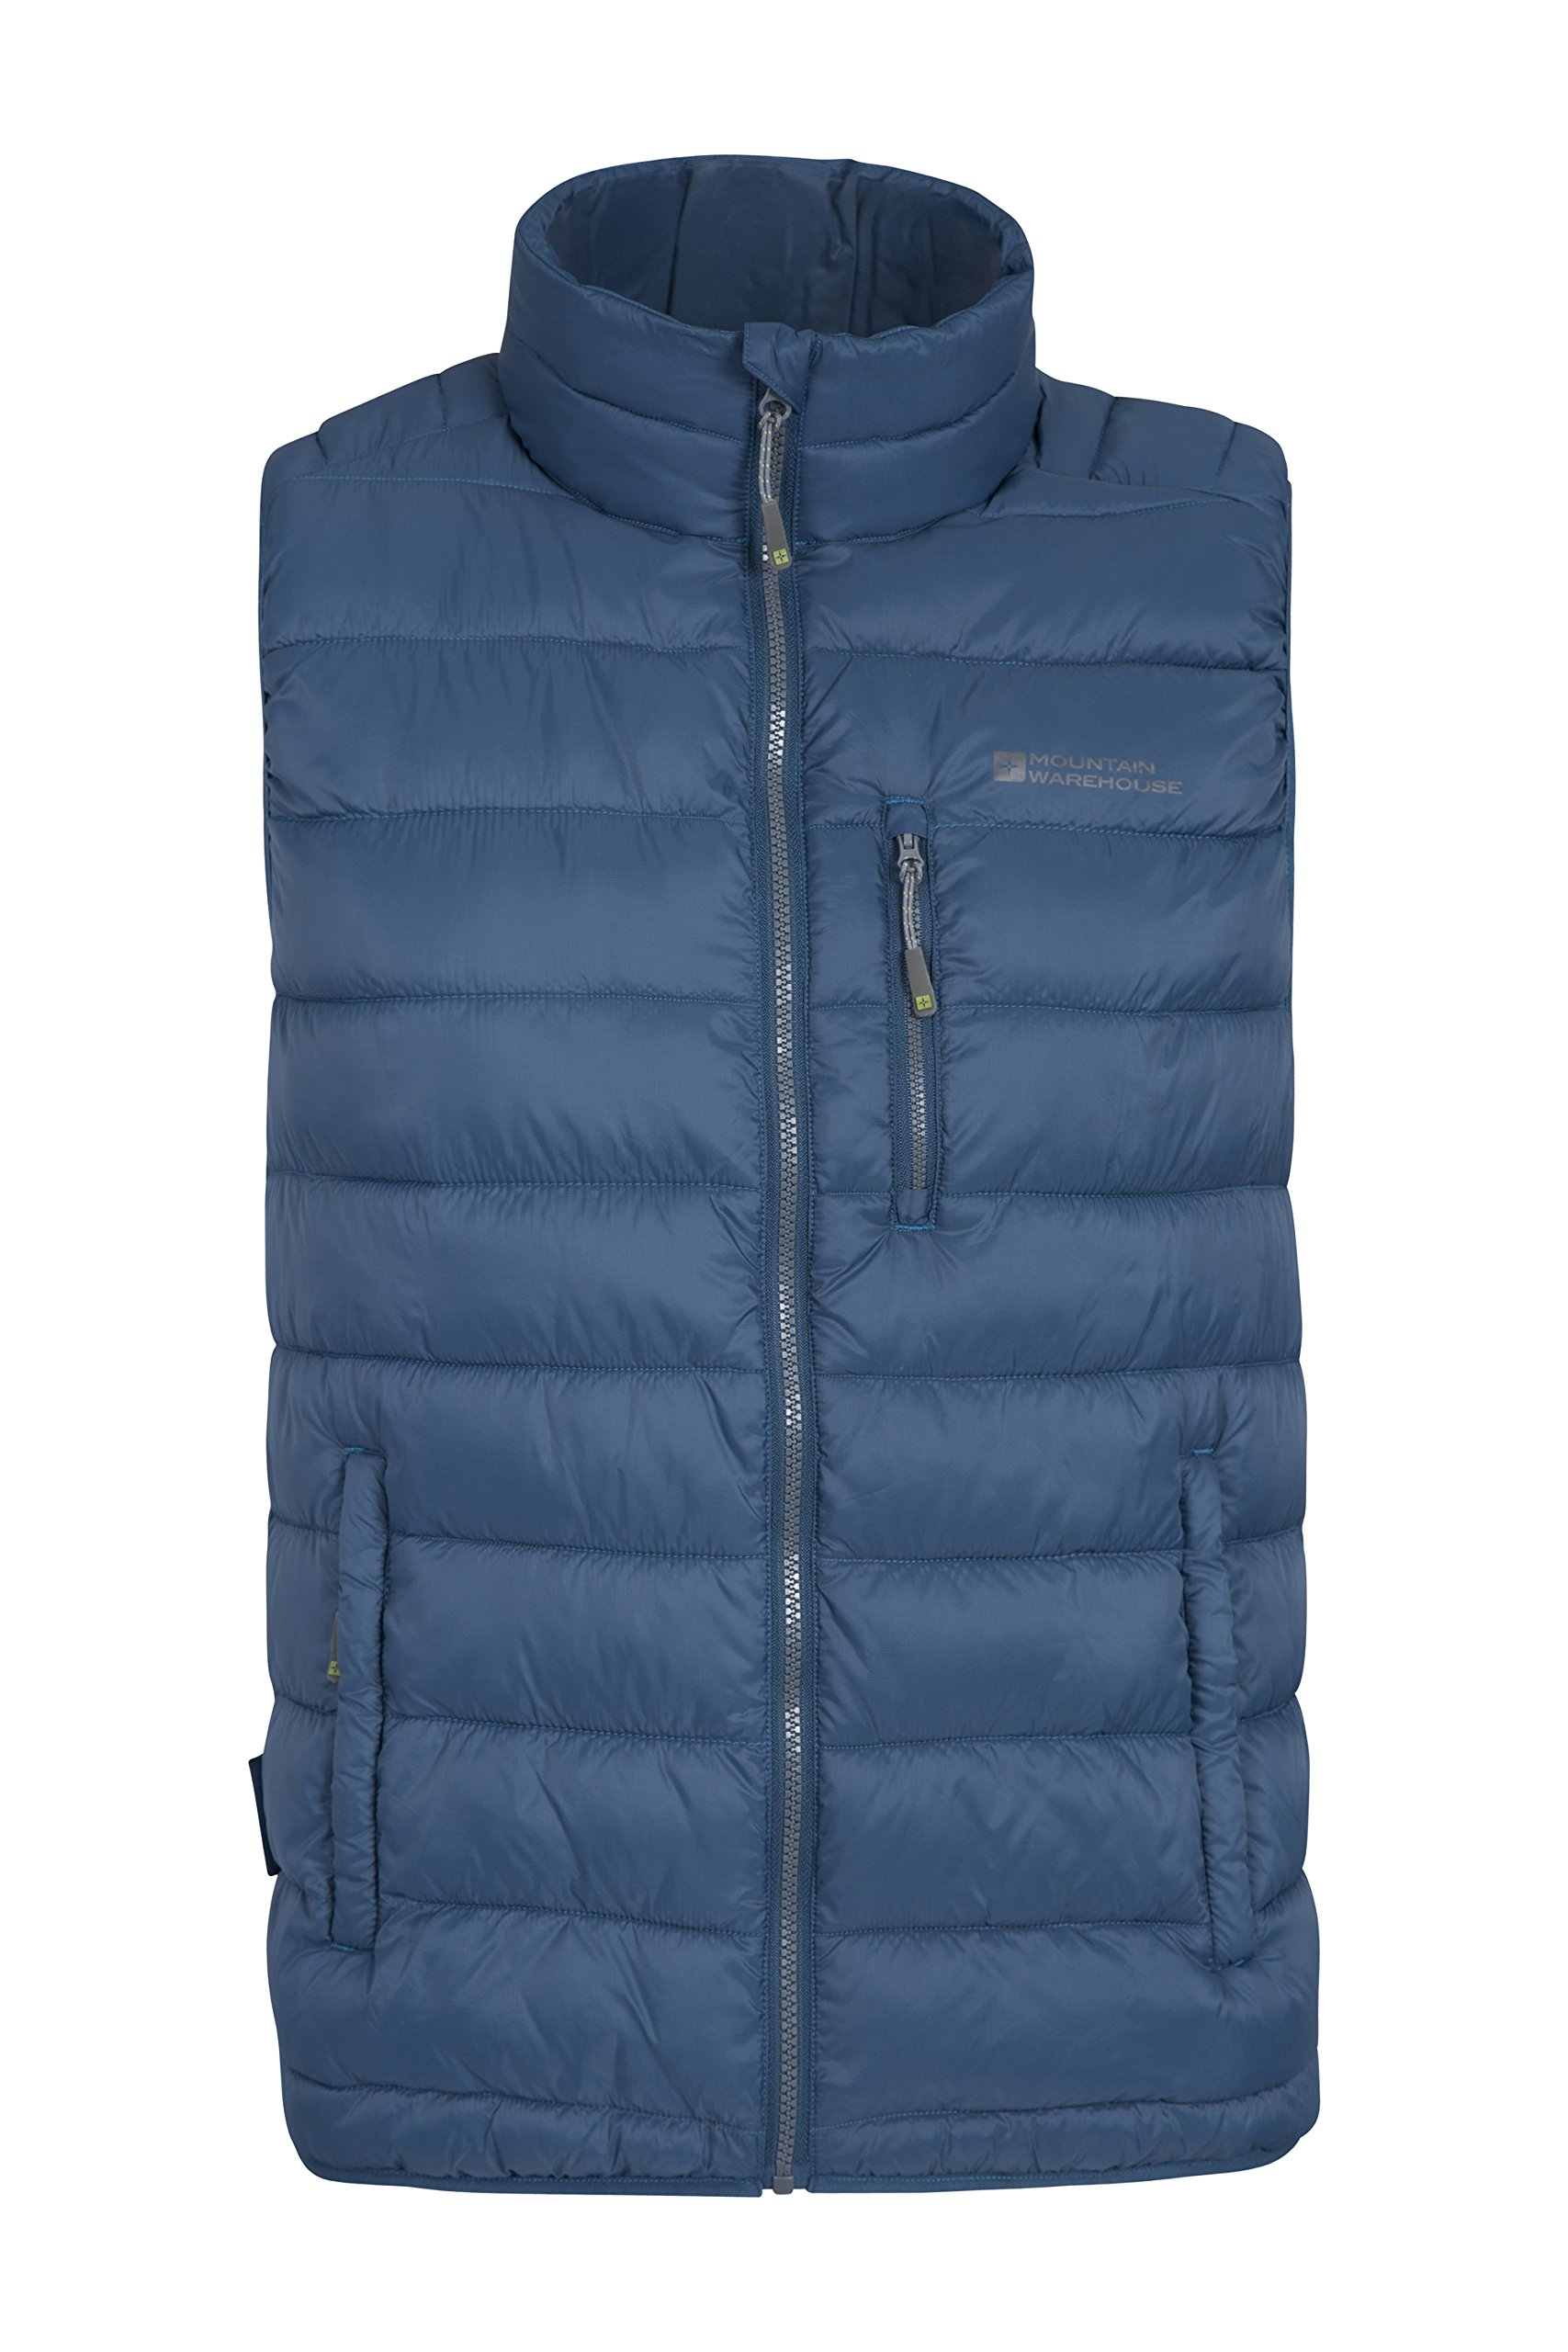 Mountain Warehouse Link Mens Padded Gilet - Summer Body Warmer Coat Petrol Blue Medium